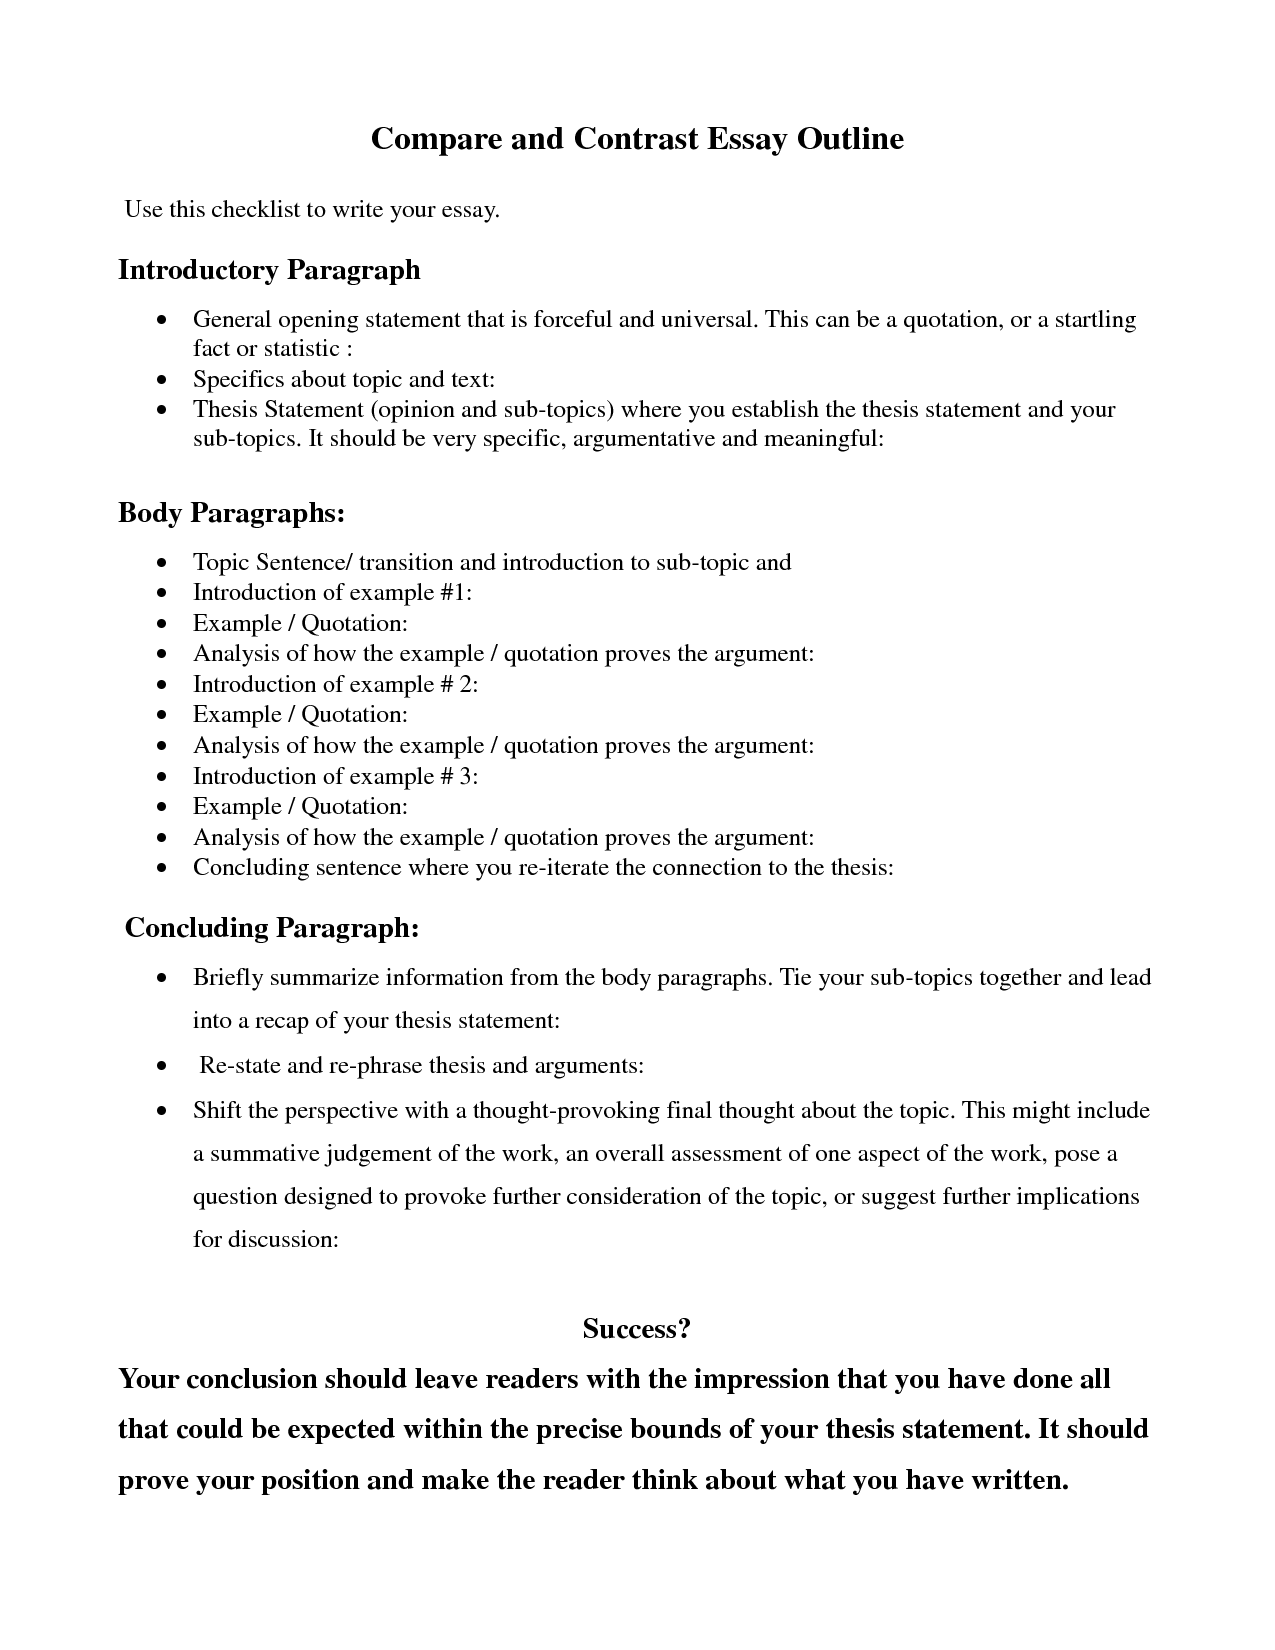 Argument Essay Thesis Statement  Essay Writing For High School Students also Process Paper Essay Sample Introduction Paragraph Comparison Essay  How To  Importance Of English Essay